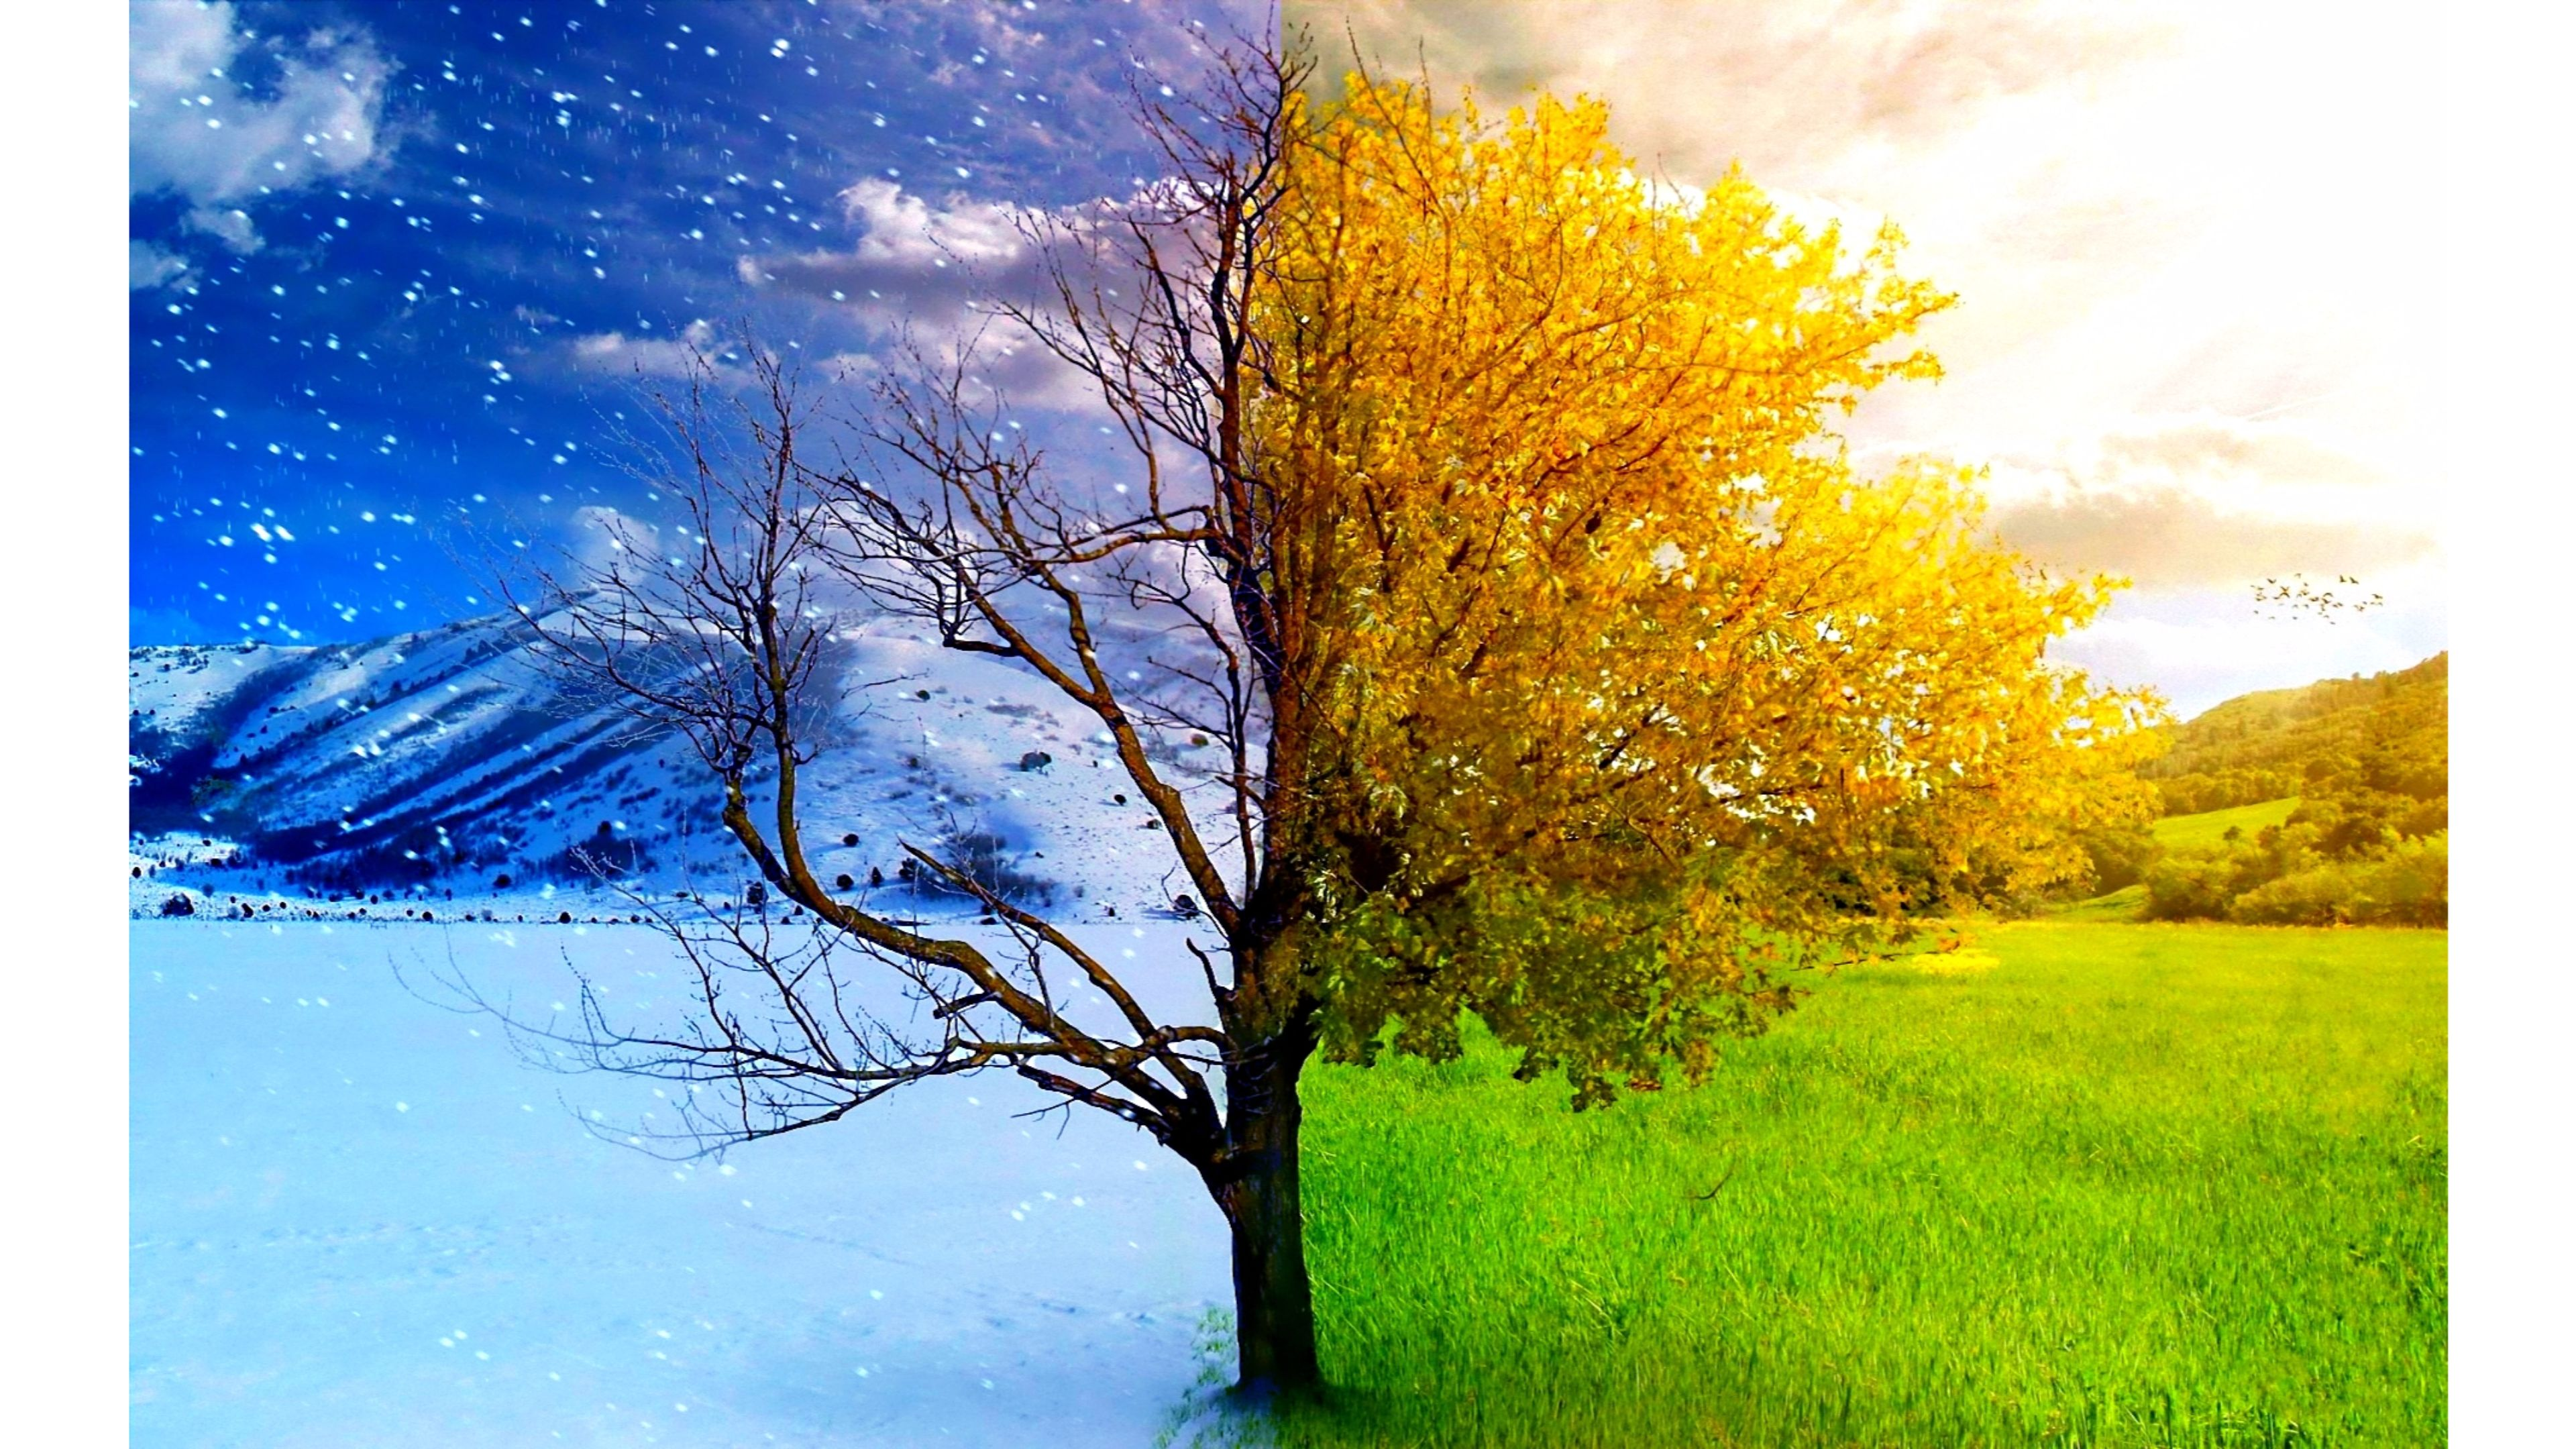 Spring wallpapers photos and desktop backgrounds up to 8k - Seasons wallpaper backgrounds ...